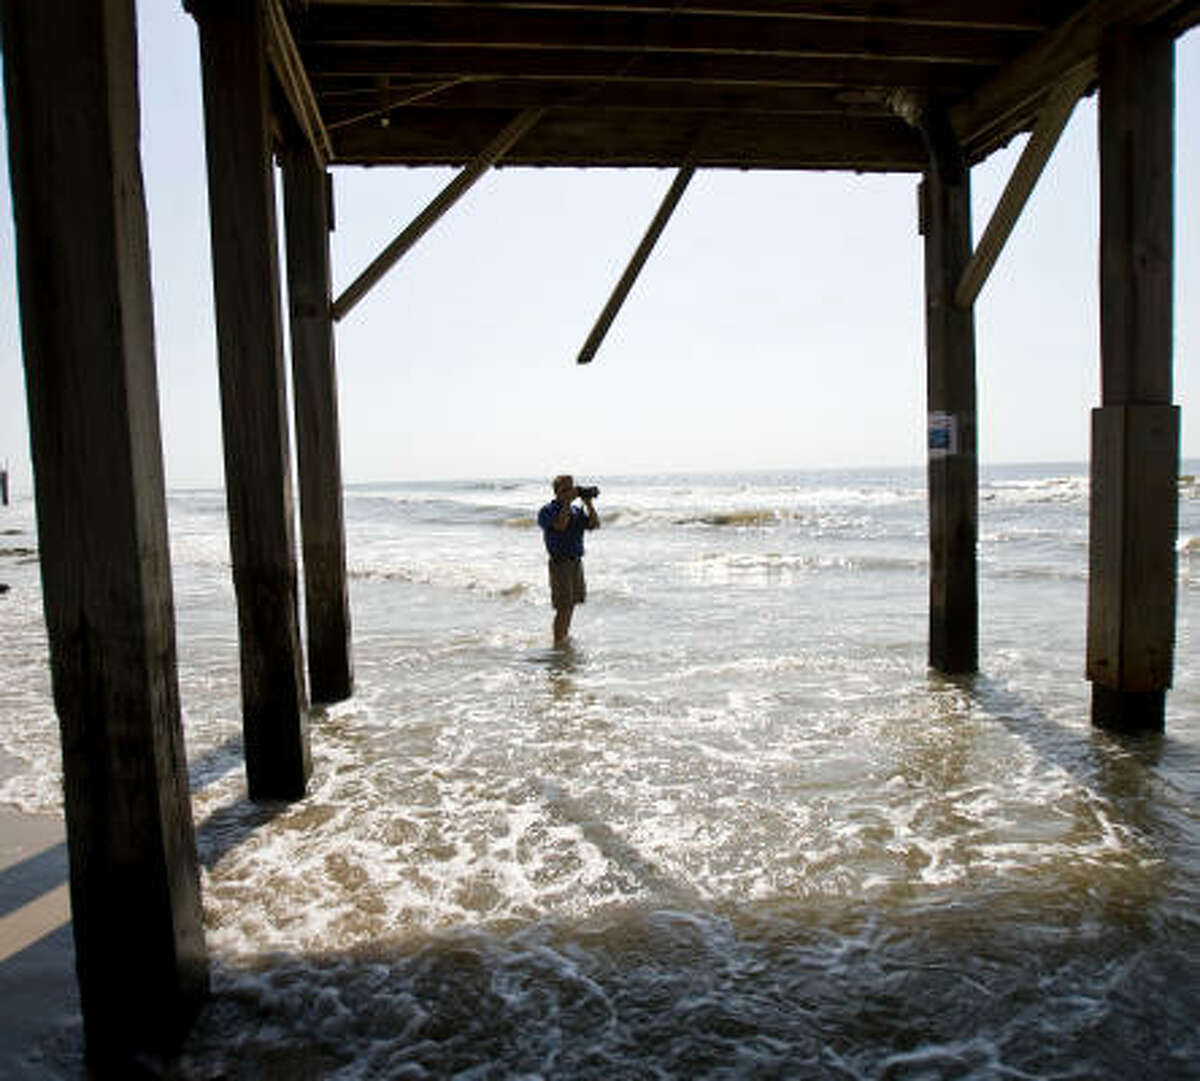 Ellis Pickett, a surfer and chairman of the Surfrider Foundation's Upper Texas Coast Chapter, sees evidence with every visit to Surfside Beach of the shrinking sand and its effect on homes. He fears Surfside will disappear like Sargent Beach did.